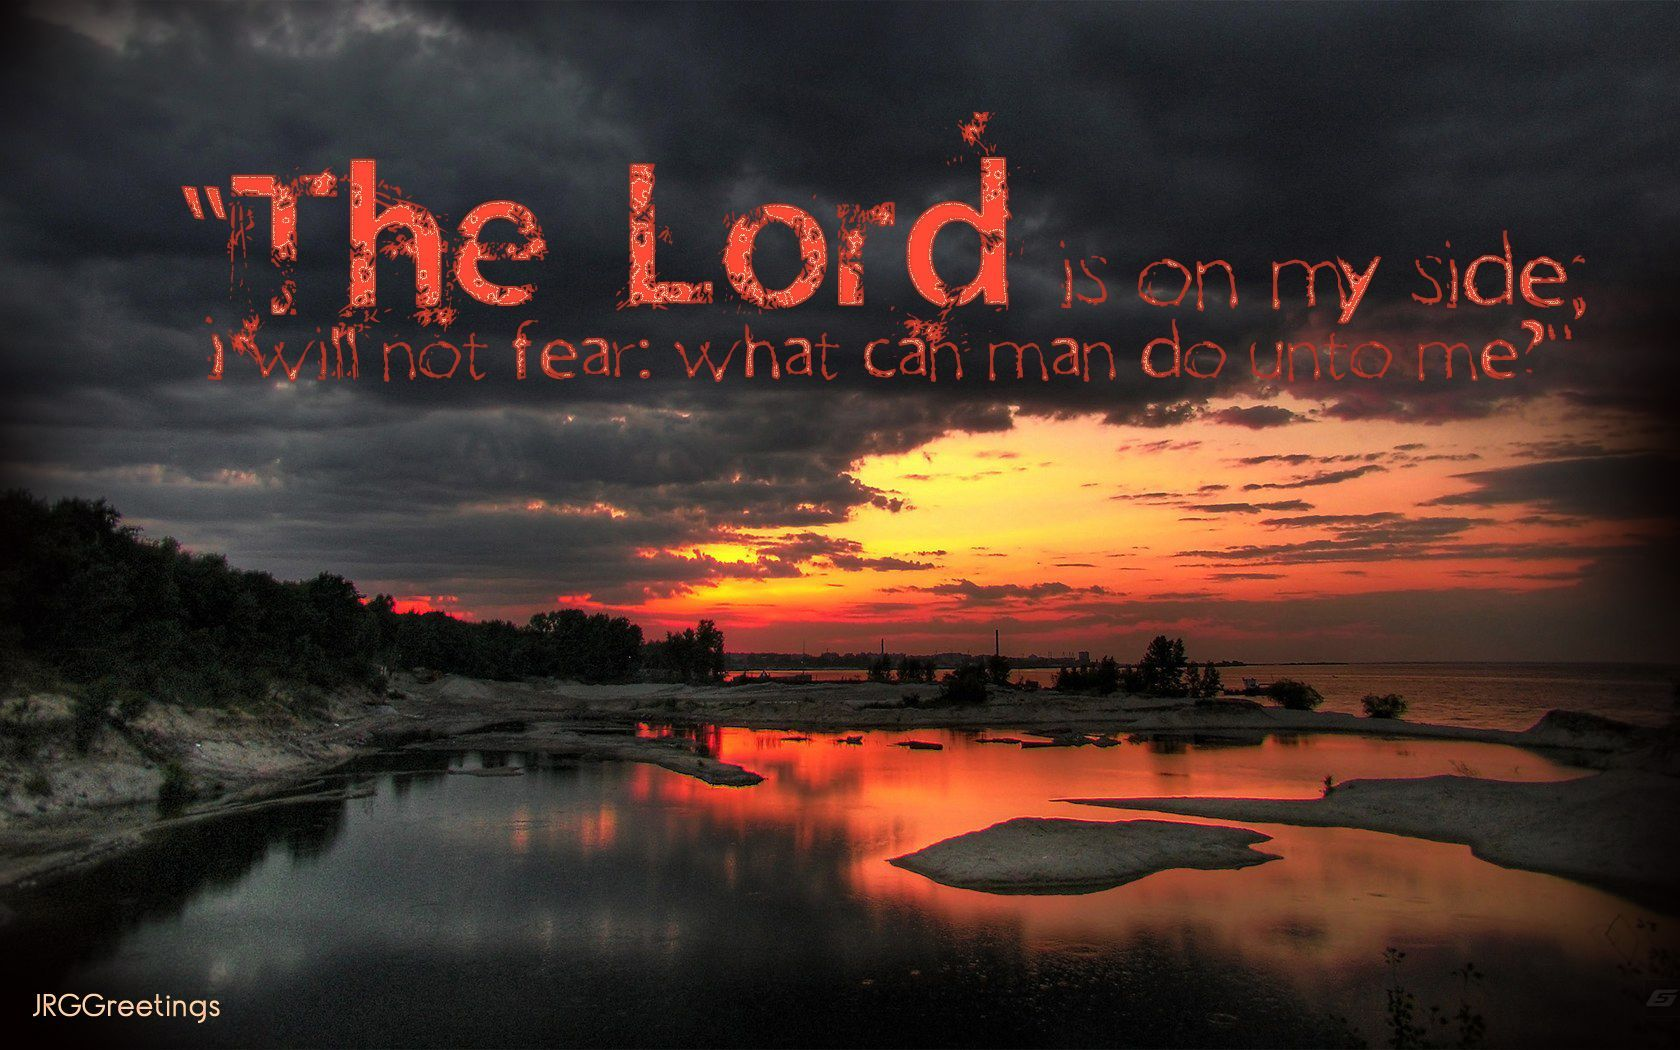 Christian Wallpapers HD Free Download